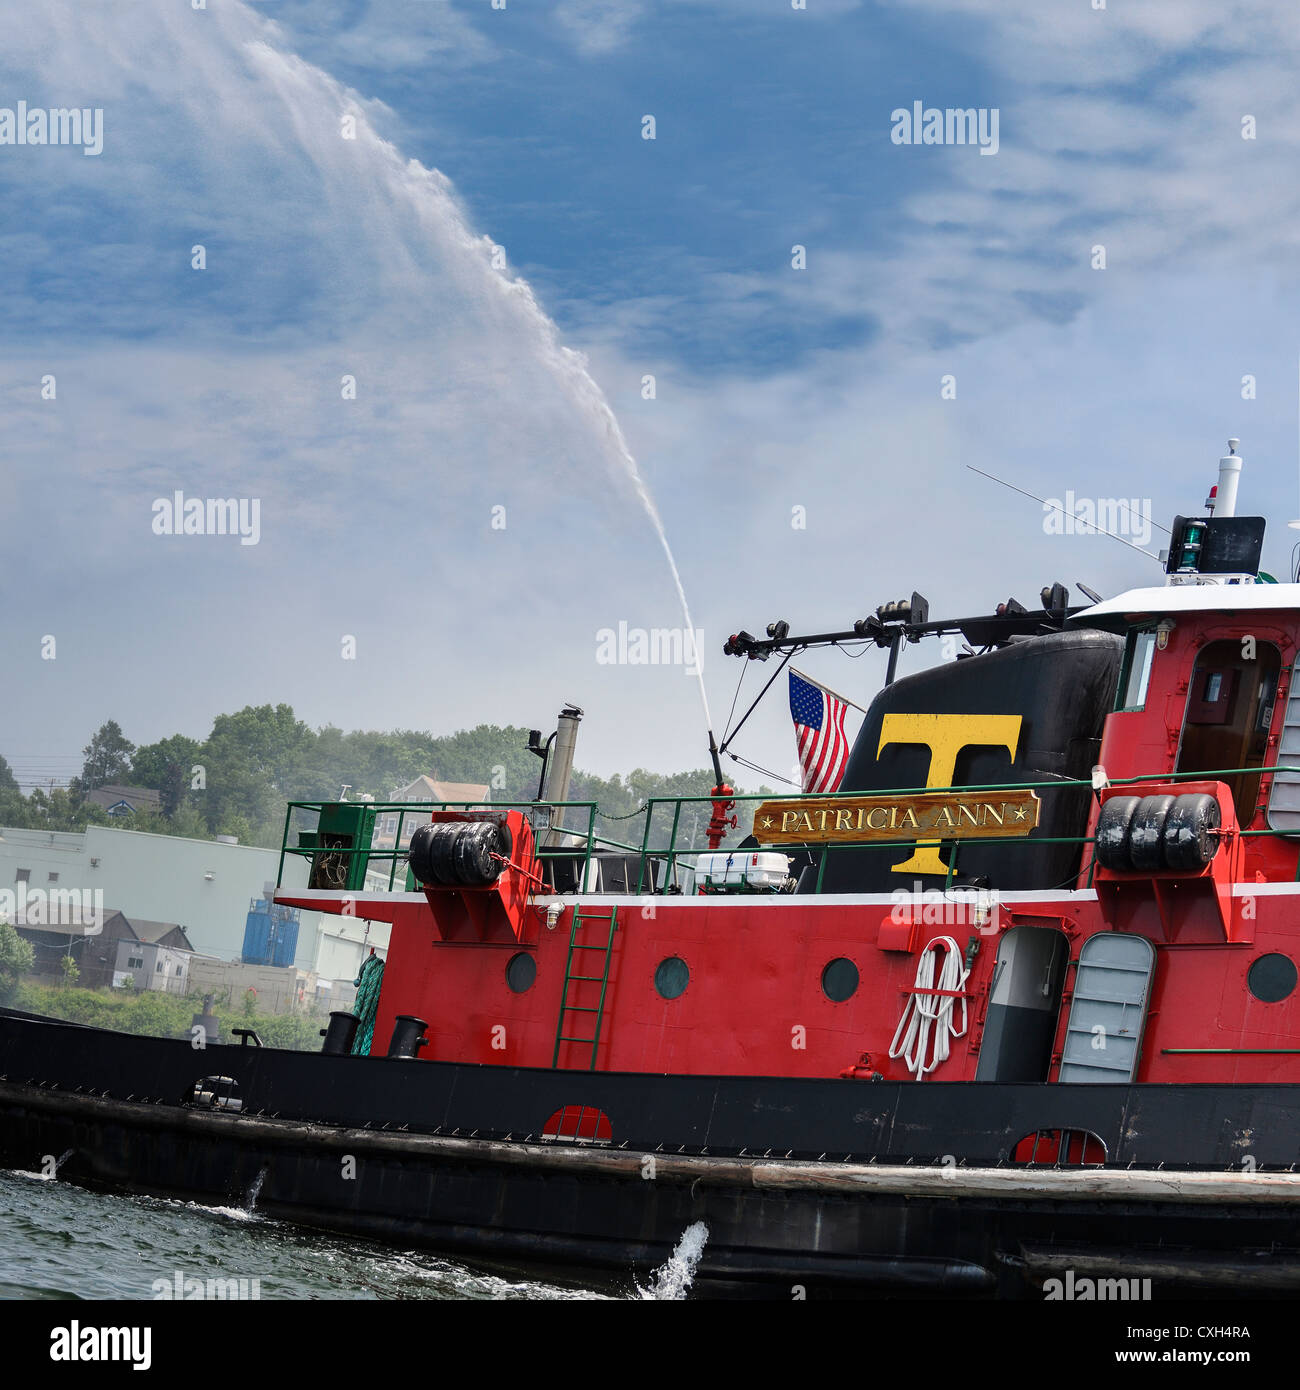 Bright red tugboat Patricia Ann gives the OpSail 2012 participants a fire fighting salute in New London Connecticut - Stock Image